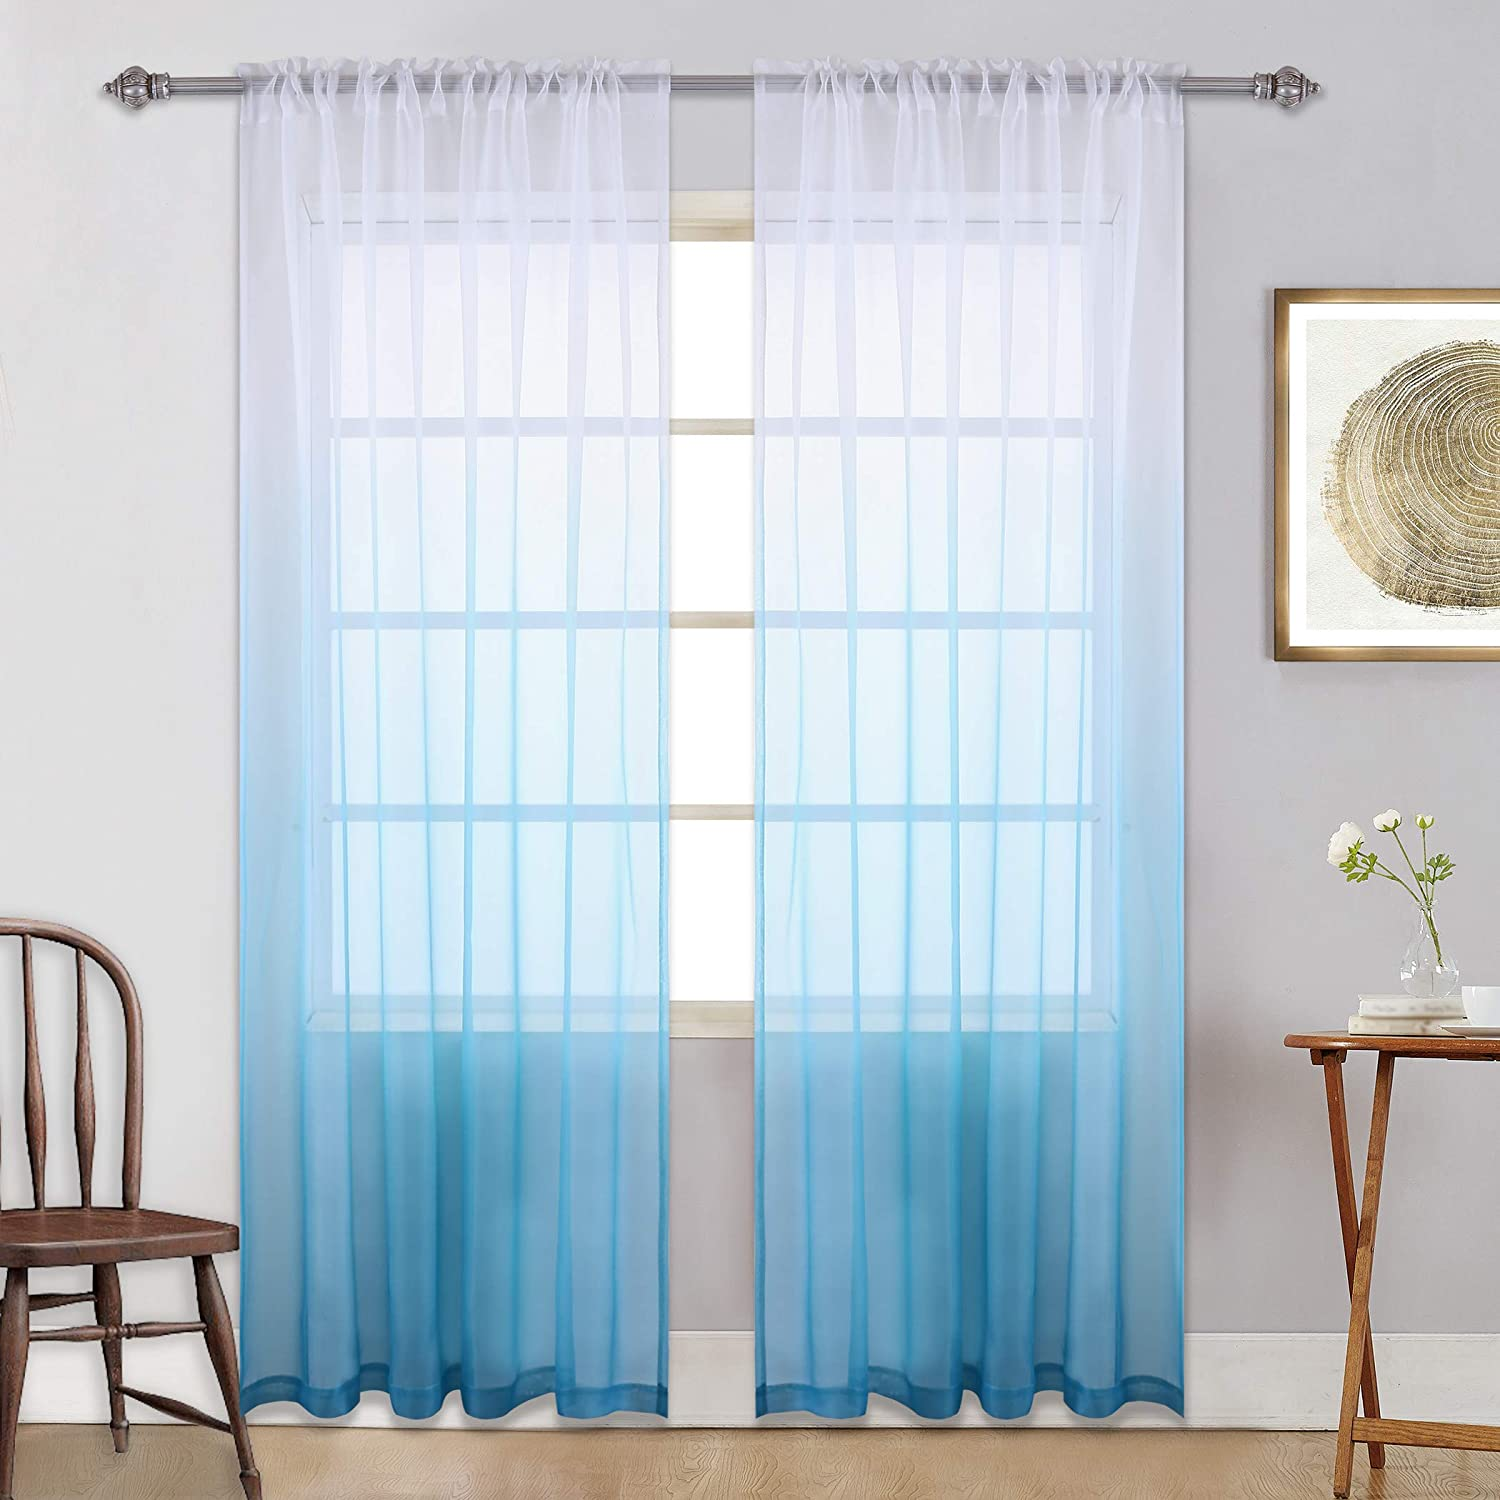 AmHoo 2 Panels Ombre Semi Sheer Curtains for Girls Bedroom Unicorn Gradient Voile Draperies Window Treatment for Kids Room Decor Rod Pocket Orange and Turquoise 52 x 84 Inch